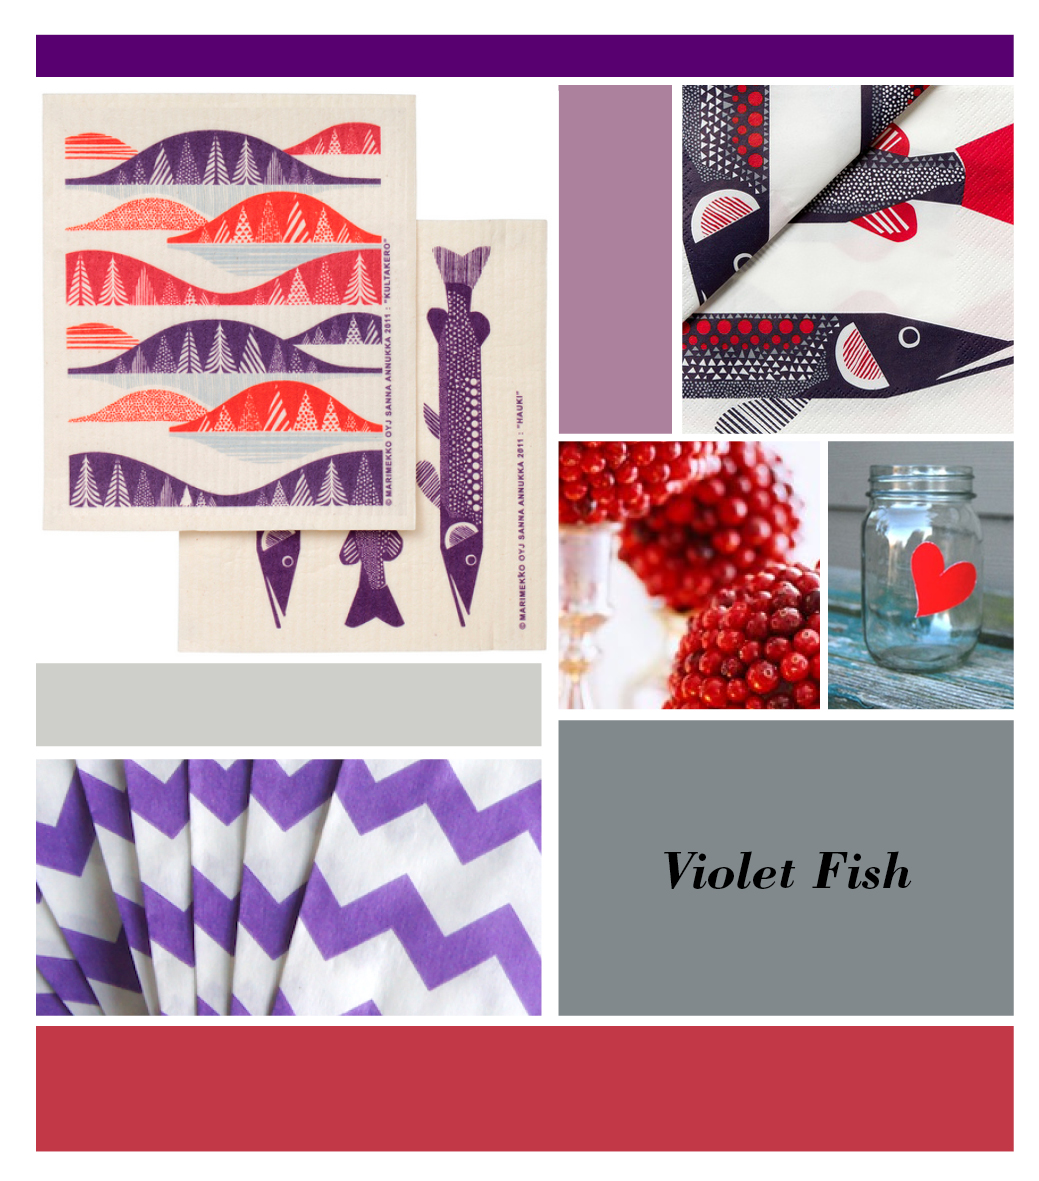 Violet-Fish-Collage